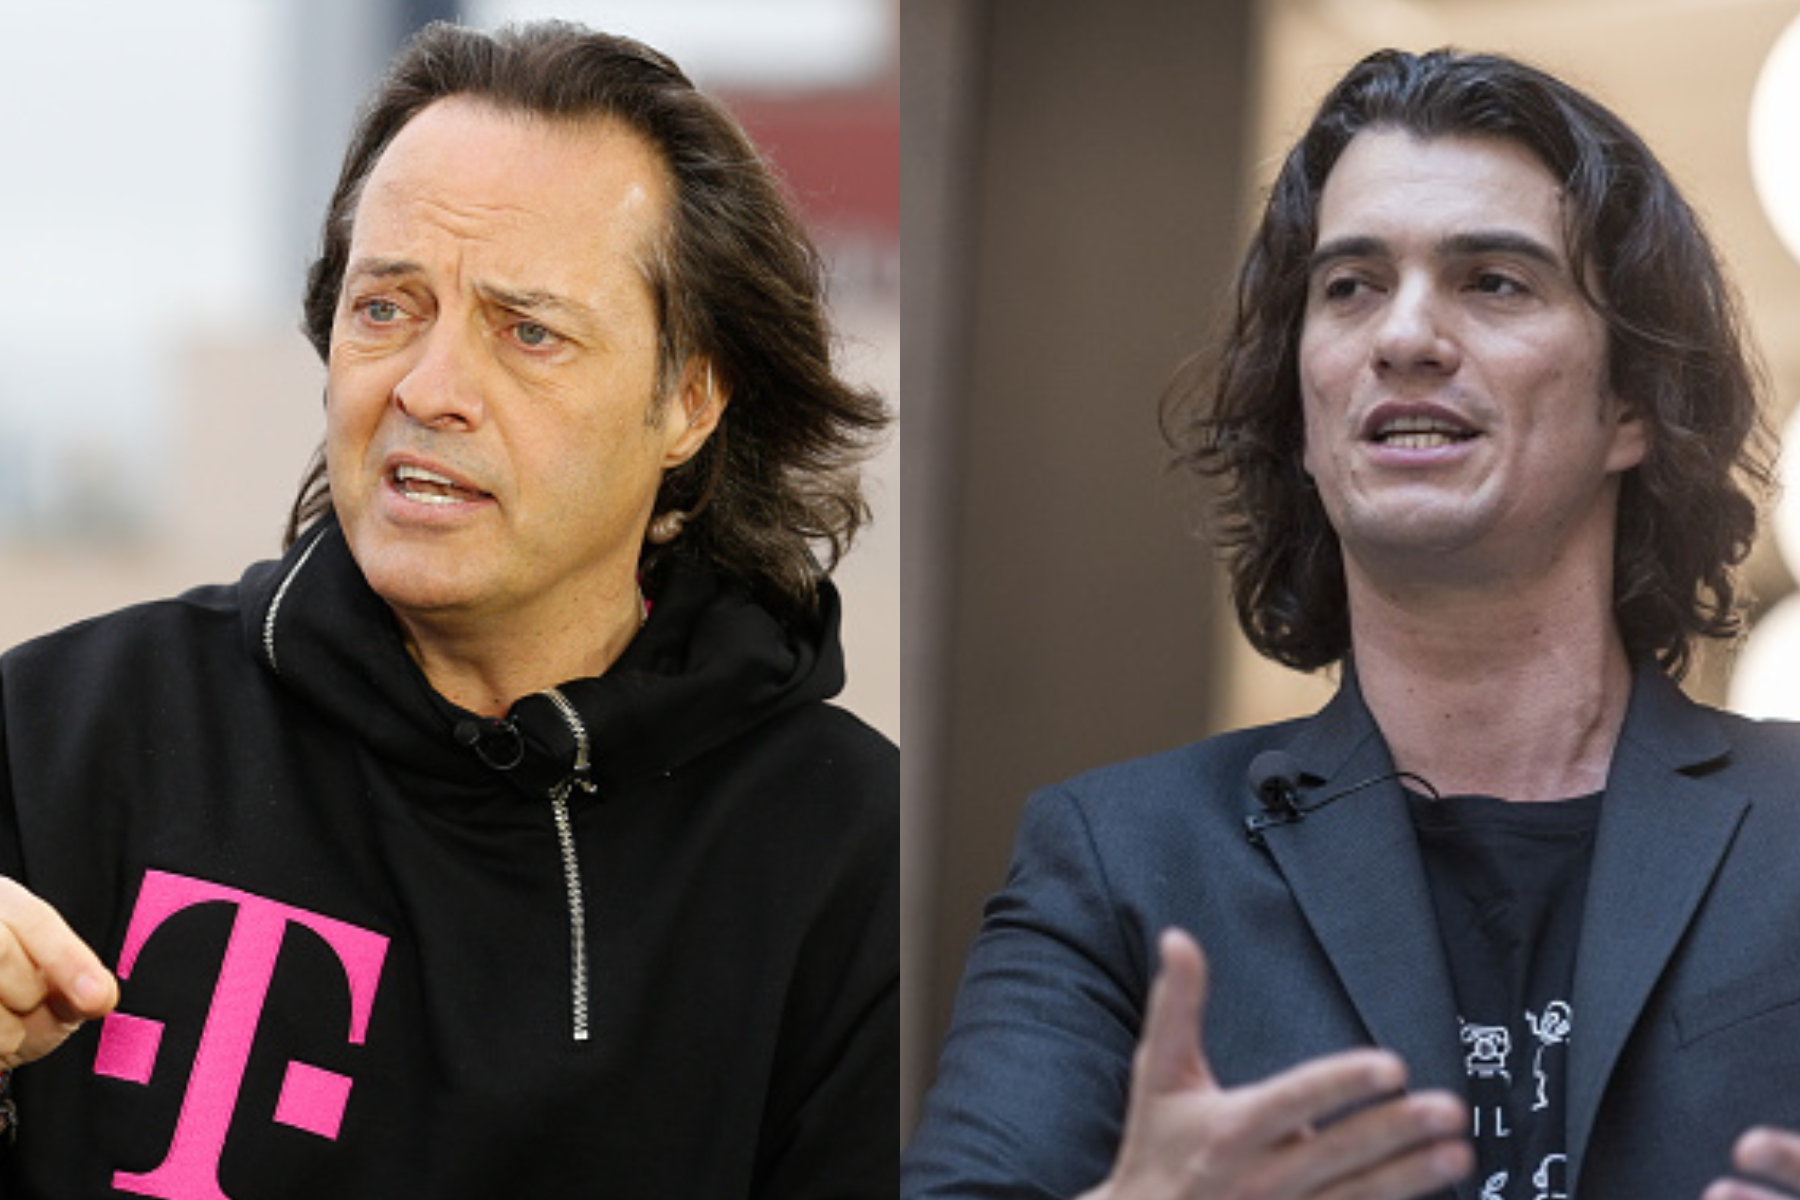 T-Mobile CEO John Legere and ex-WeWork CEO Adam Neumann.